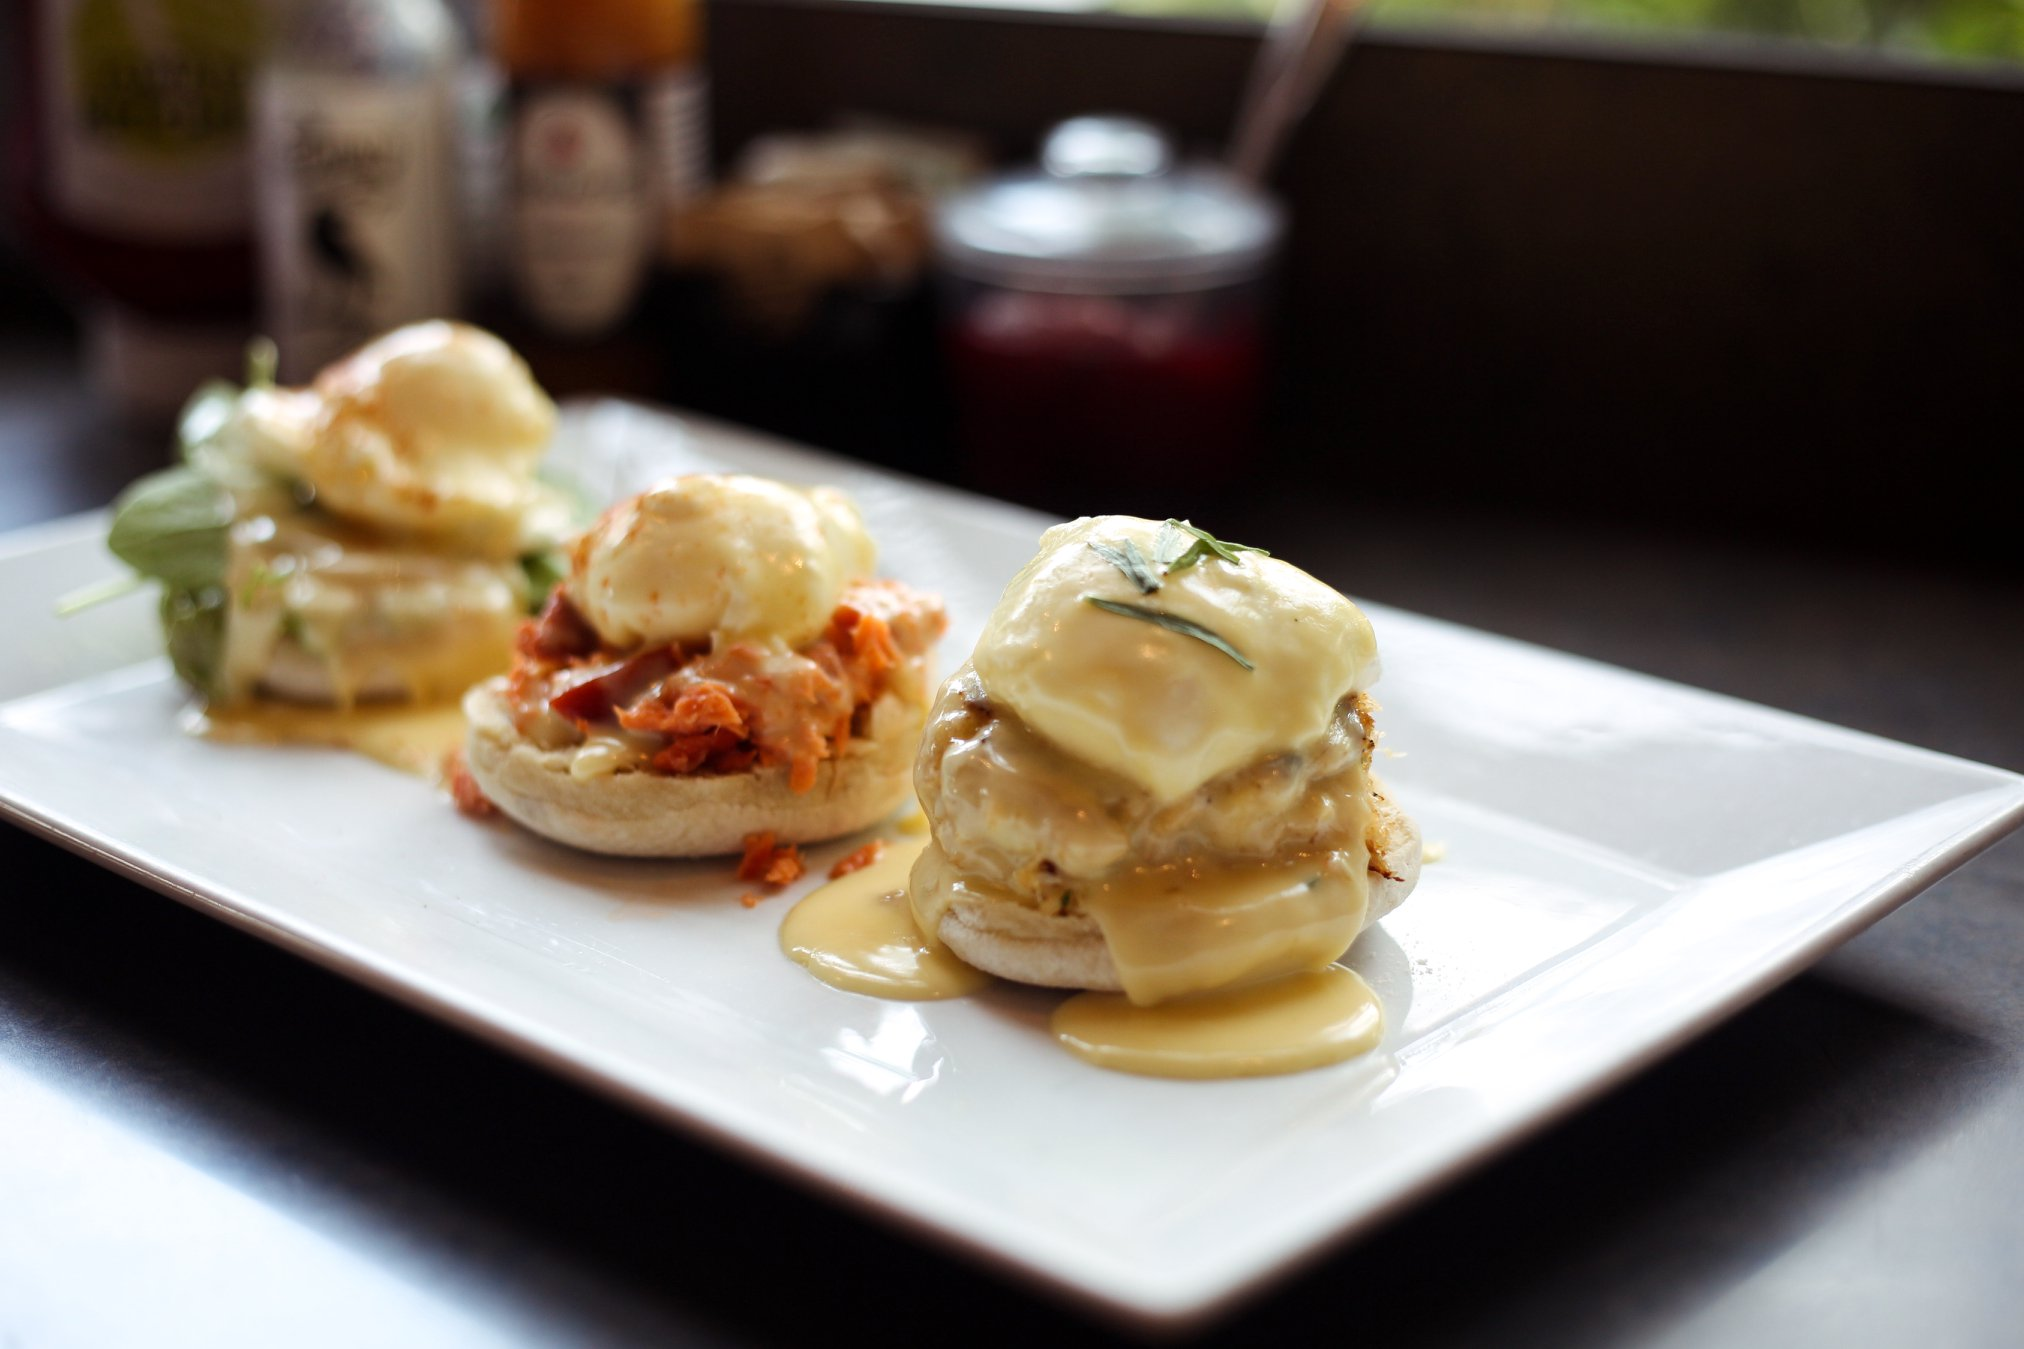 Try our Benedict Sampler! This tasty dish includes one each of our dungeness crab cake, smoked salmon, and west coast benedicts.